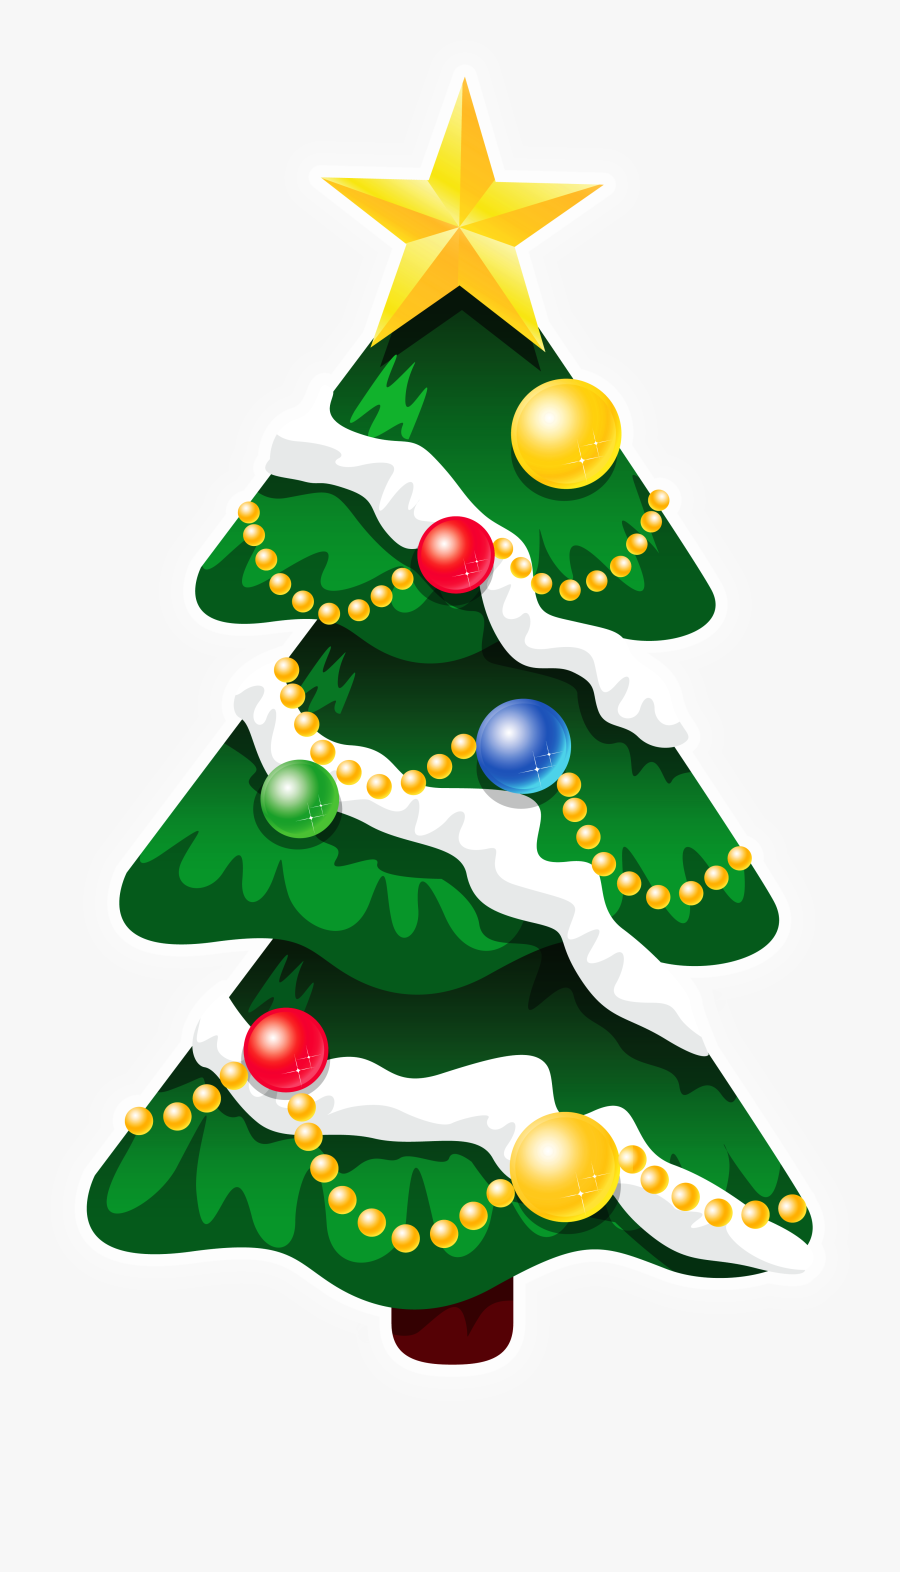 Transparent Snowy Deco Xmas Tree With Star Png Clipart - Christmas Tree Illustration Png, Transparent Clipart